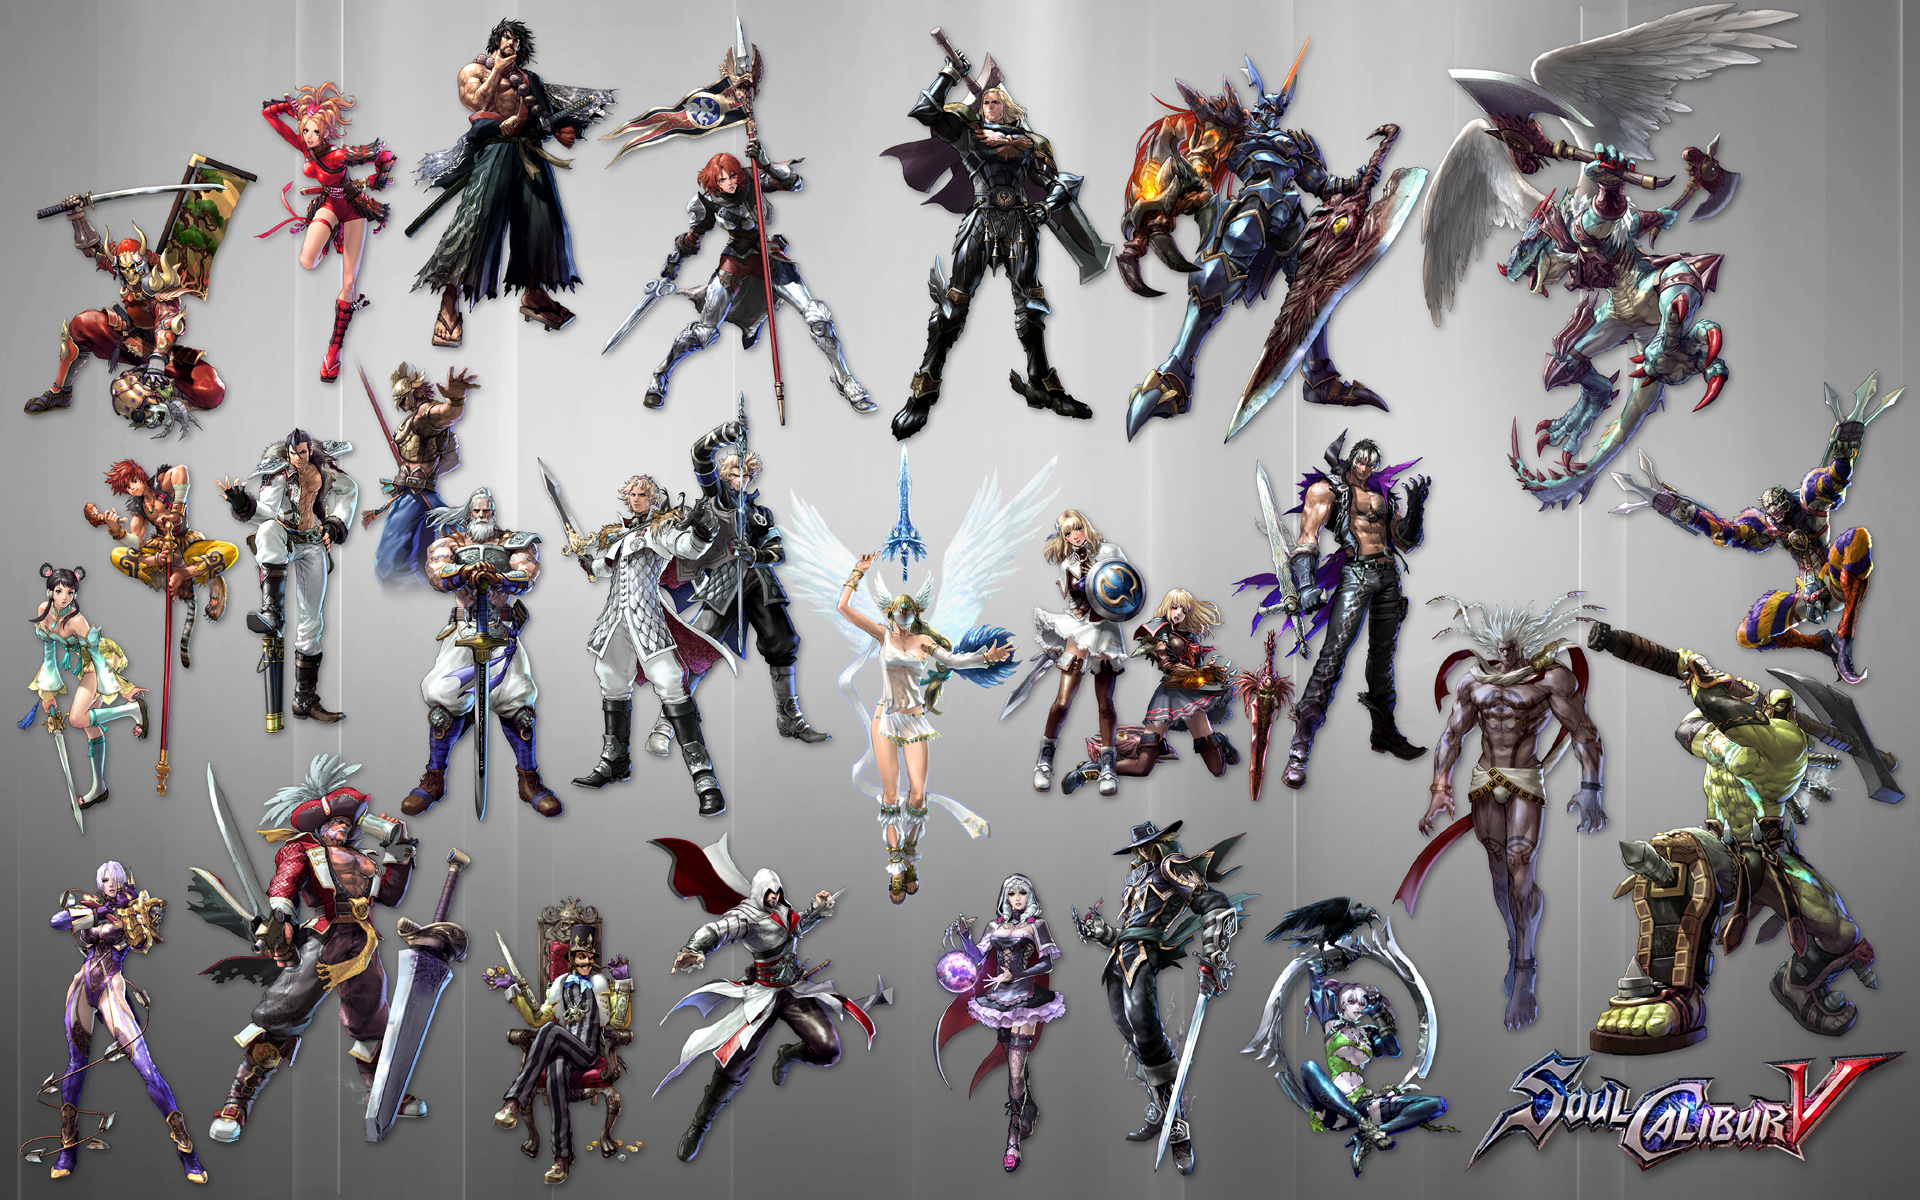 Soul Calibur V Anime Characters : Moved permanently